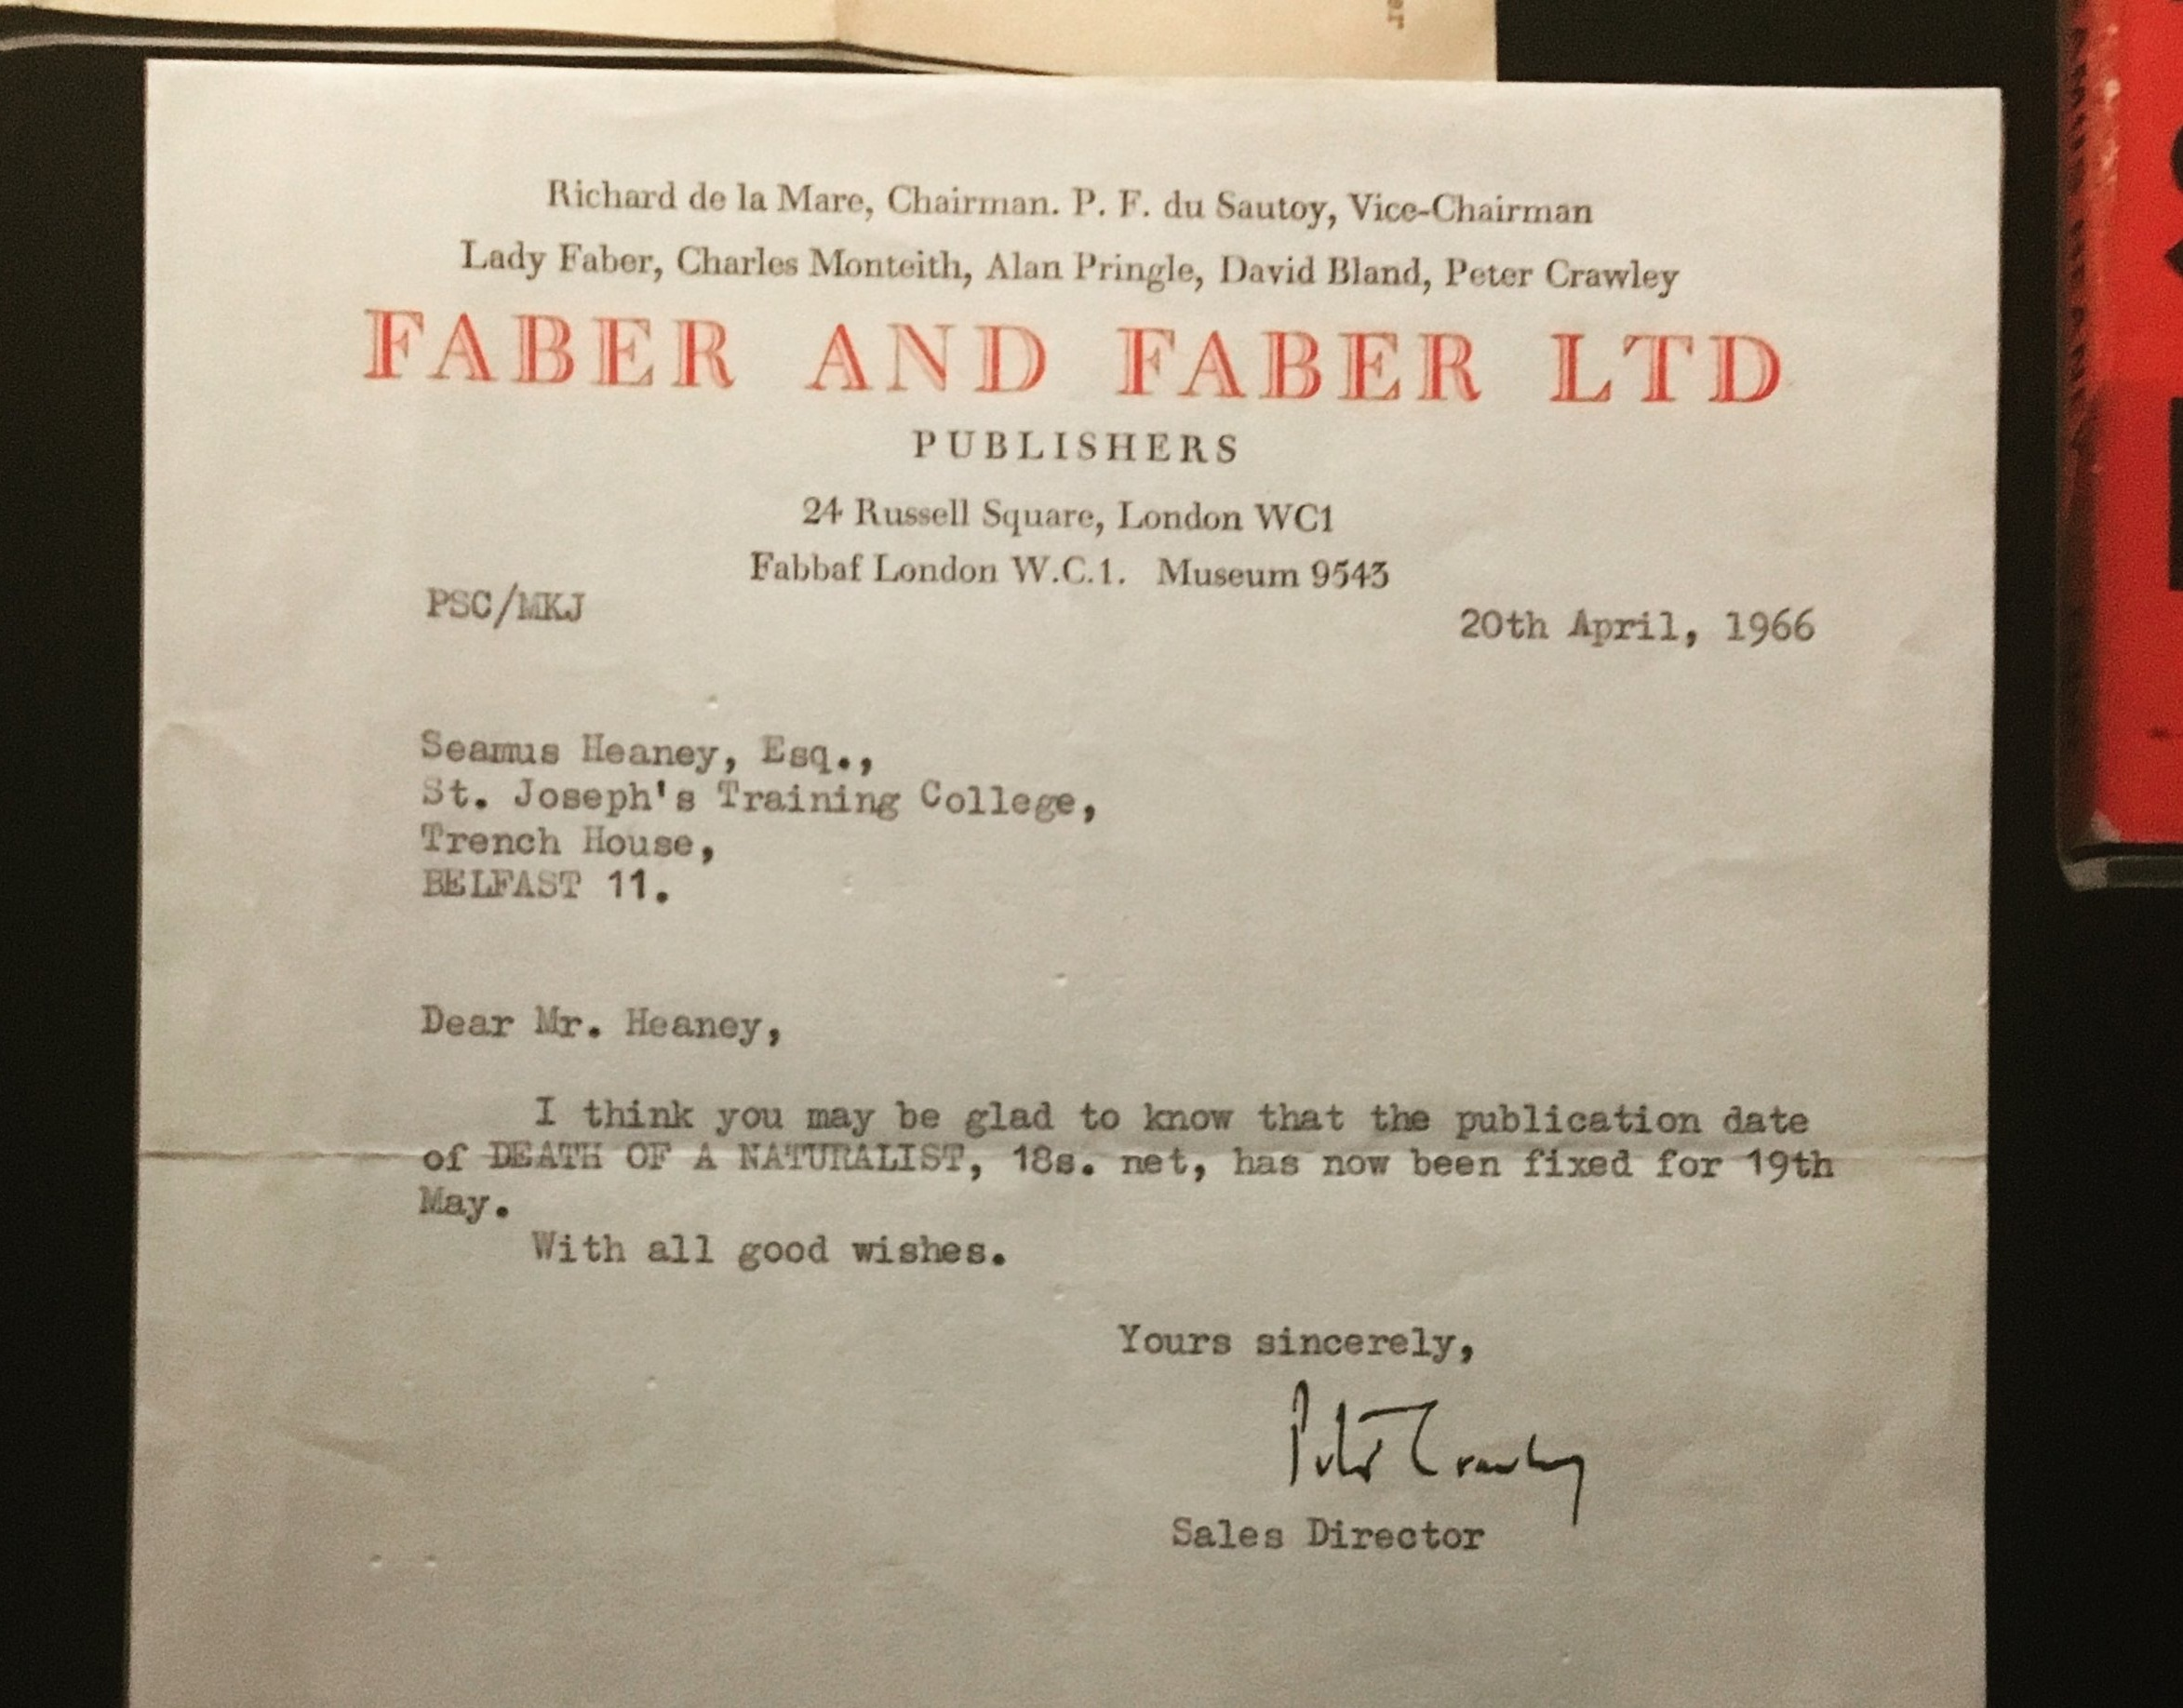 An early letter to Seamus Heaney from Faber and Faber, confirming the date and price of his first book.